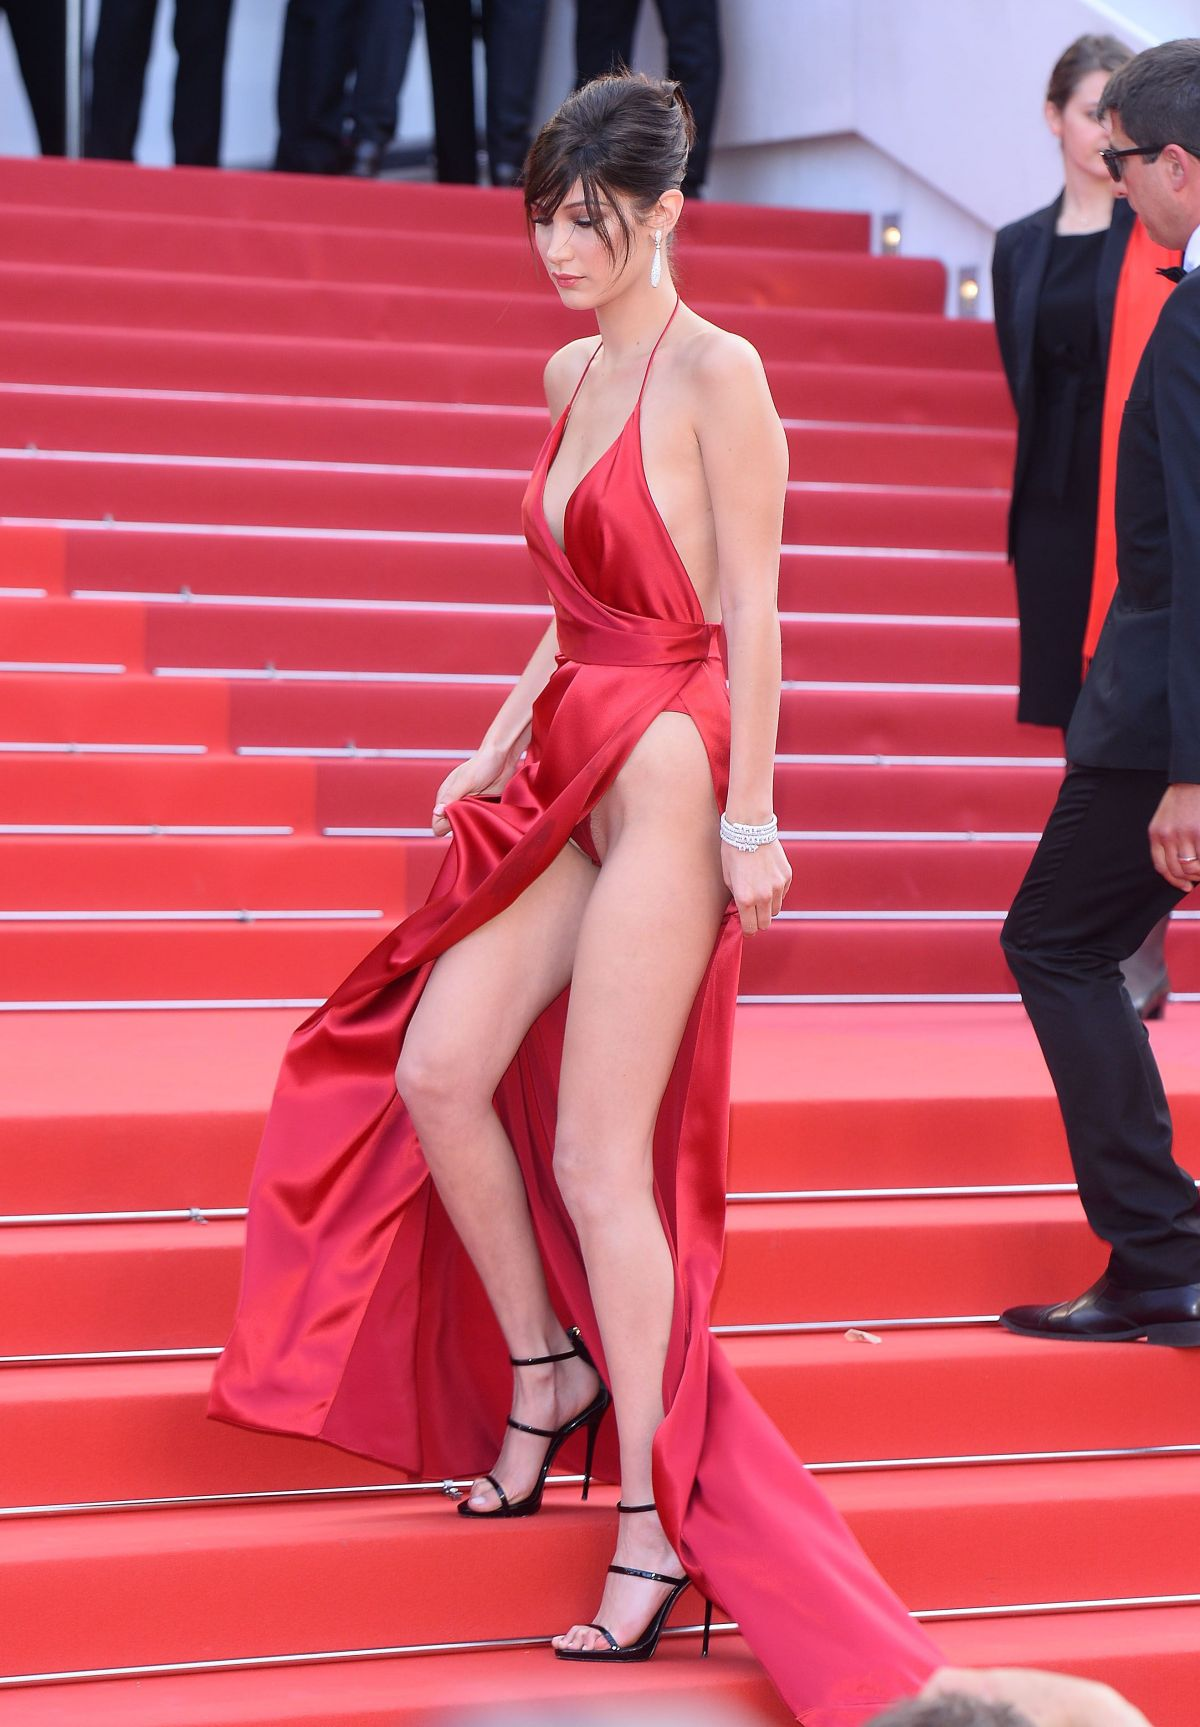 Model Bella Hadid flashed her underwear in Cannes ...